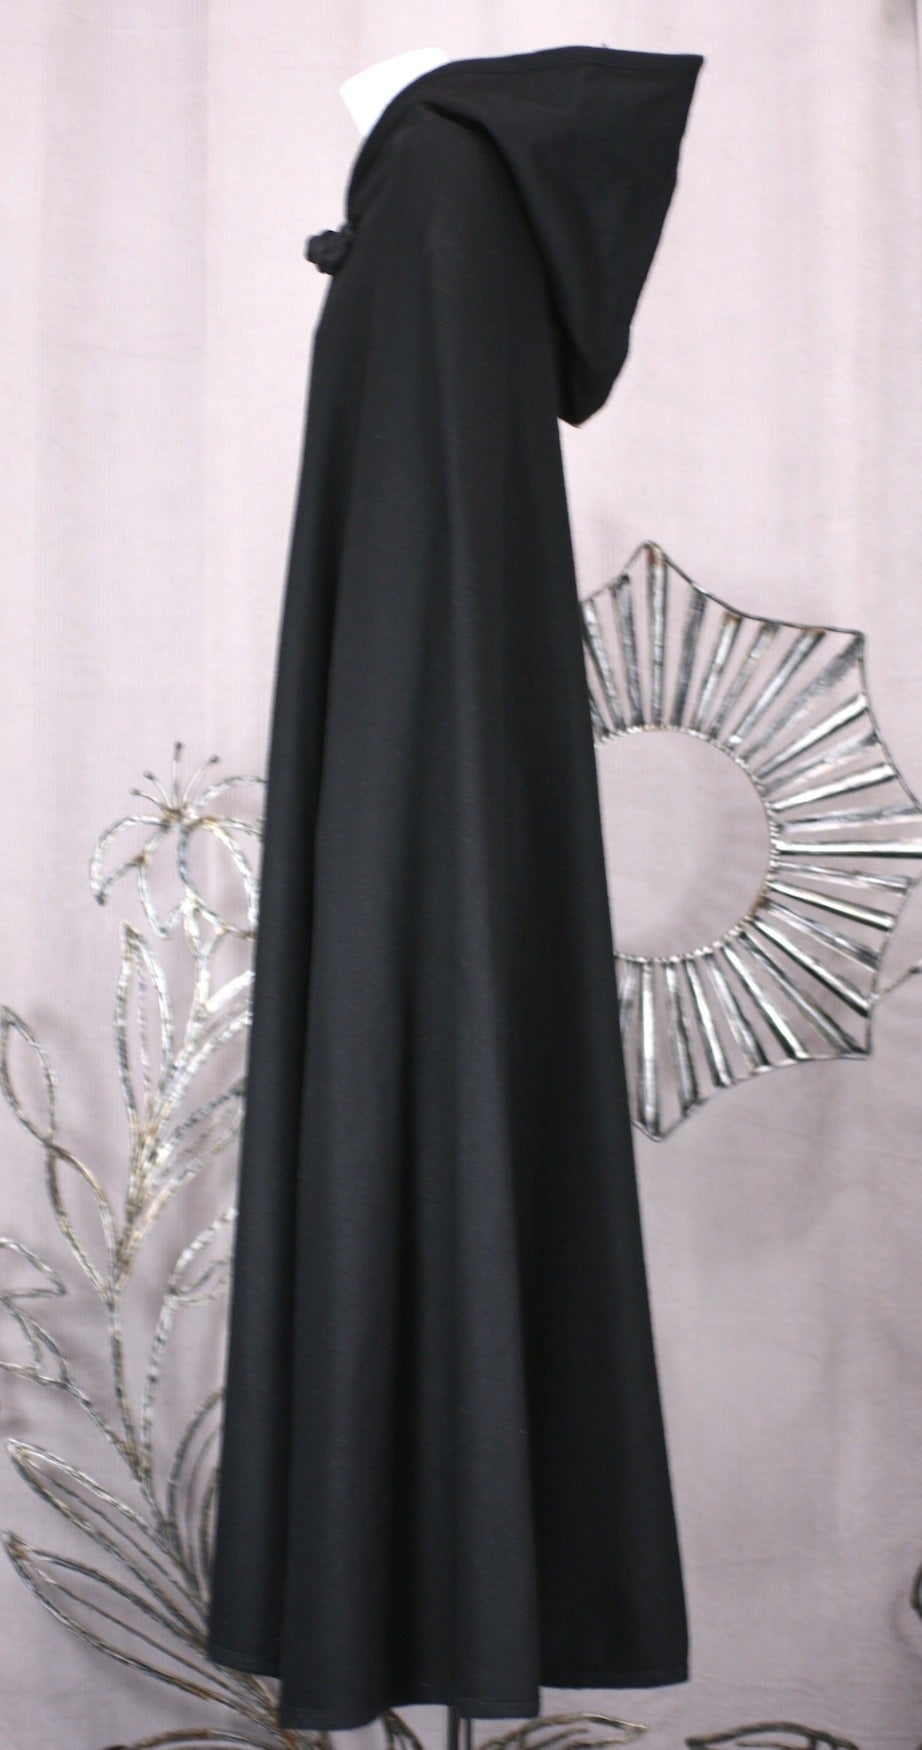 Wool Melton Cape, Attrib. YSL In Good Condition For Sale In Riverdale, NY